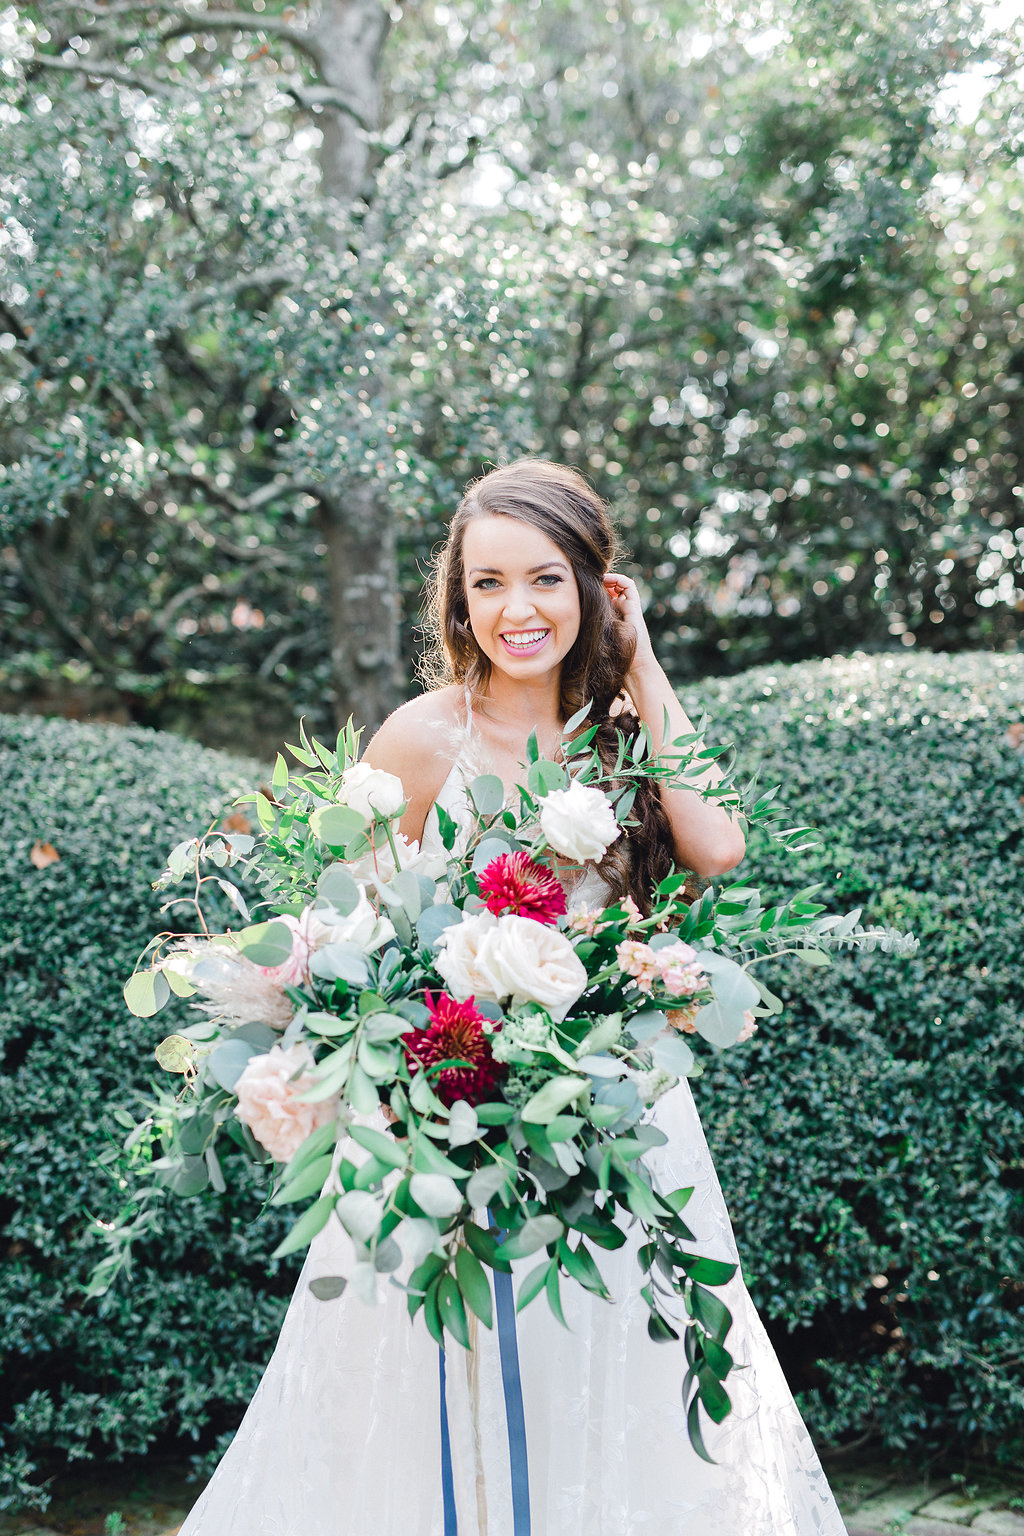 savannah-bridal-shop-ivory-and-beau-blush-by-hayley-paige-savannah-bridal-boutique-savannah-wedding-dresses-savannah-bride-ships-of-the-sea-wedding-inspiration-bouquet.JPG